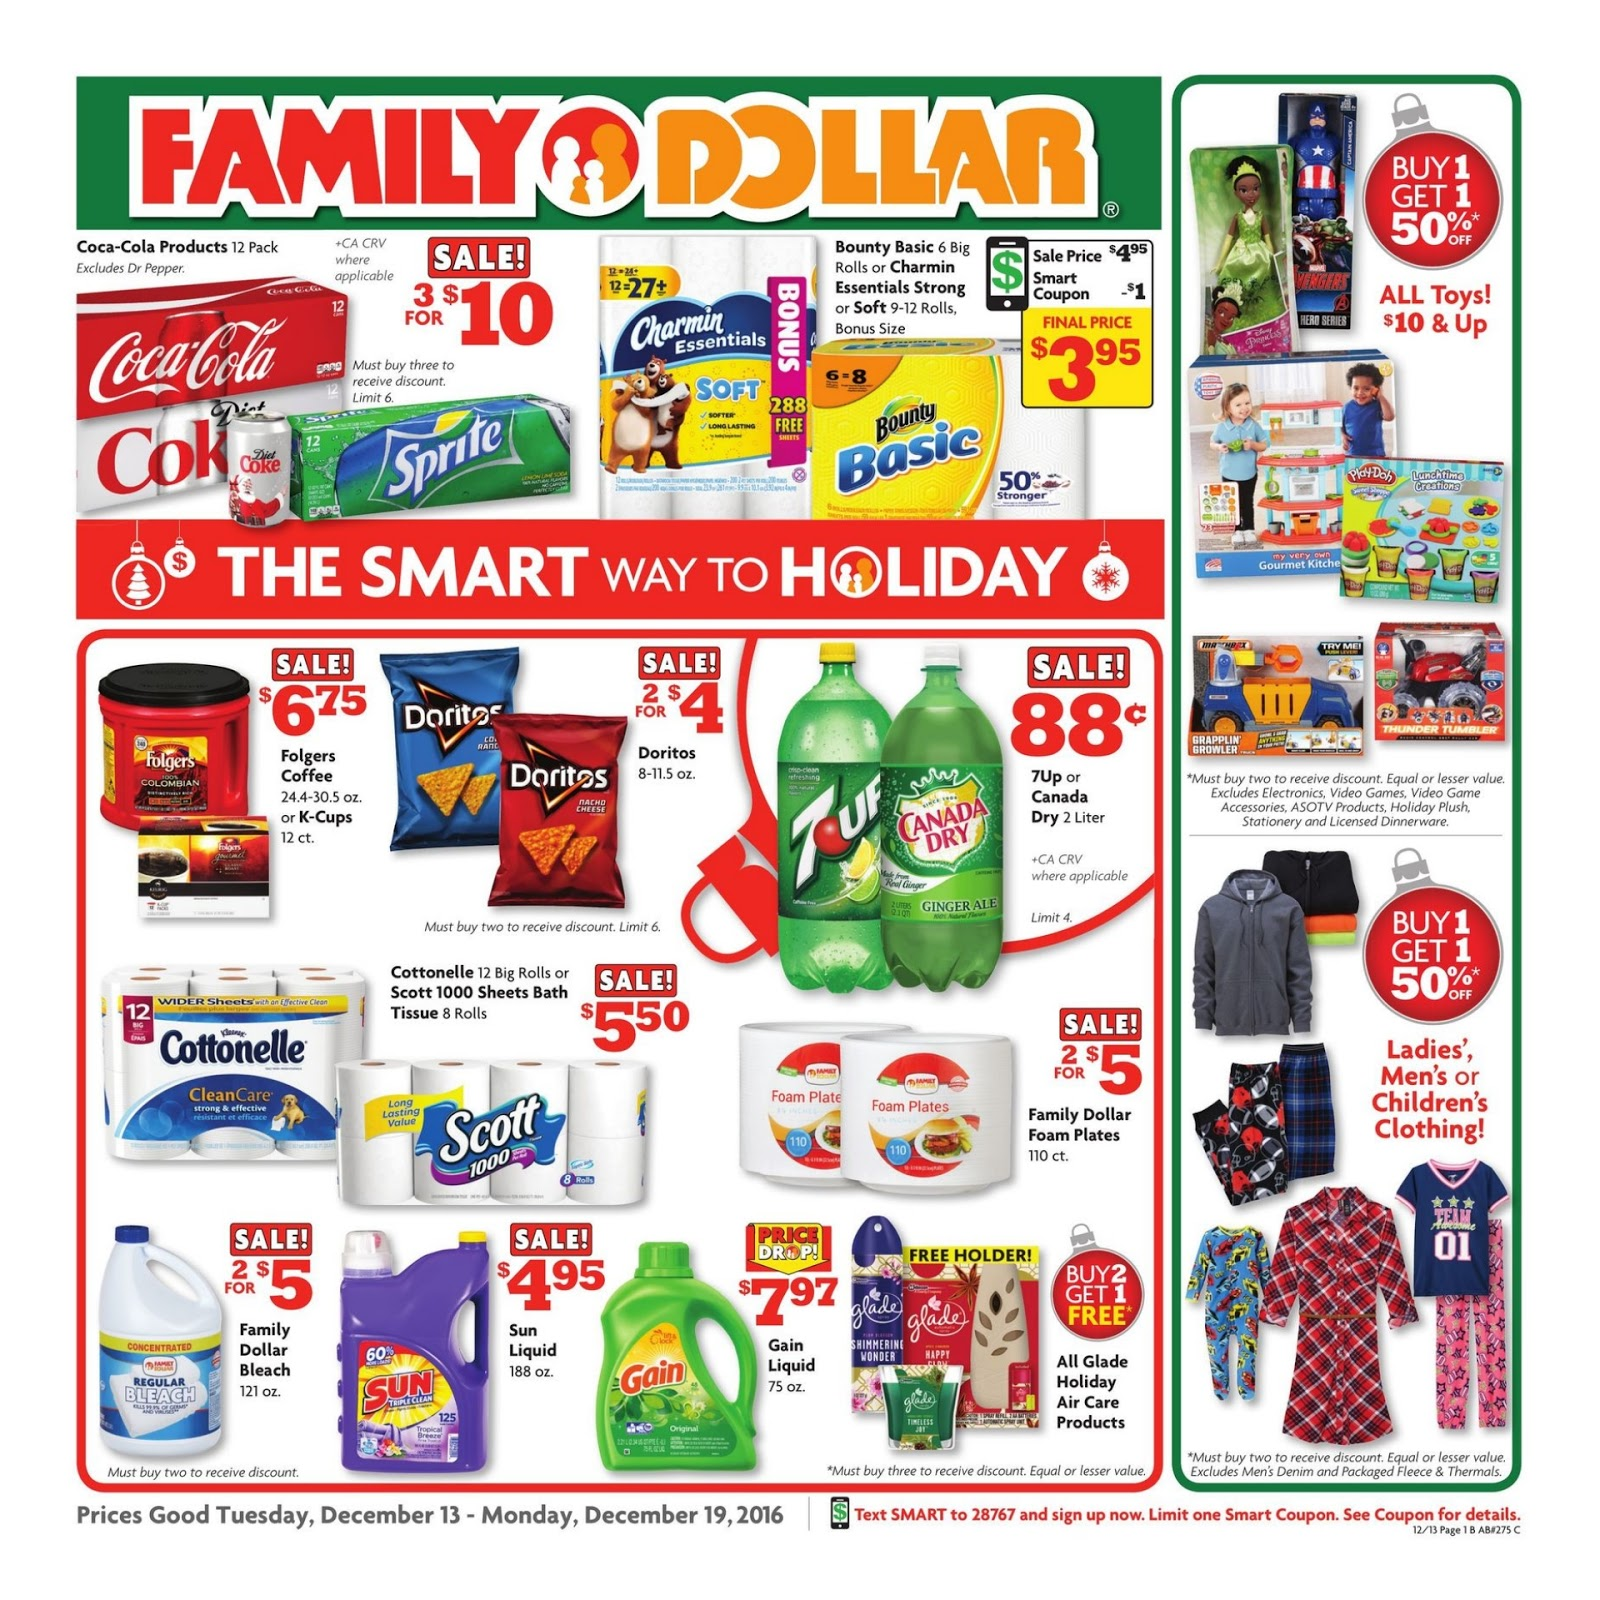 Weekly Deals In Stores NowEveryday Savings· Free Returns· 5% Off W/ REDcard· Free Shipping $35+Goods: Groceries, Health, Beauty, Furniture, Clothing, Electronics, Entertainment.